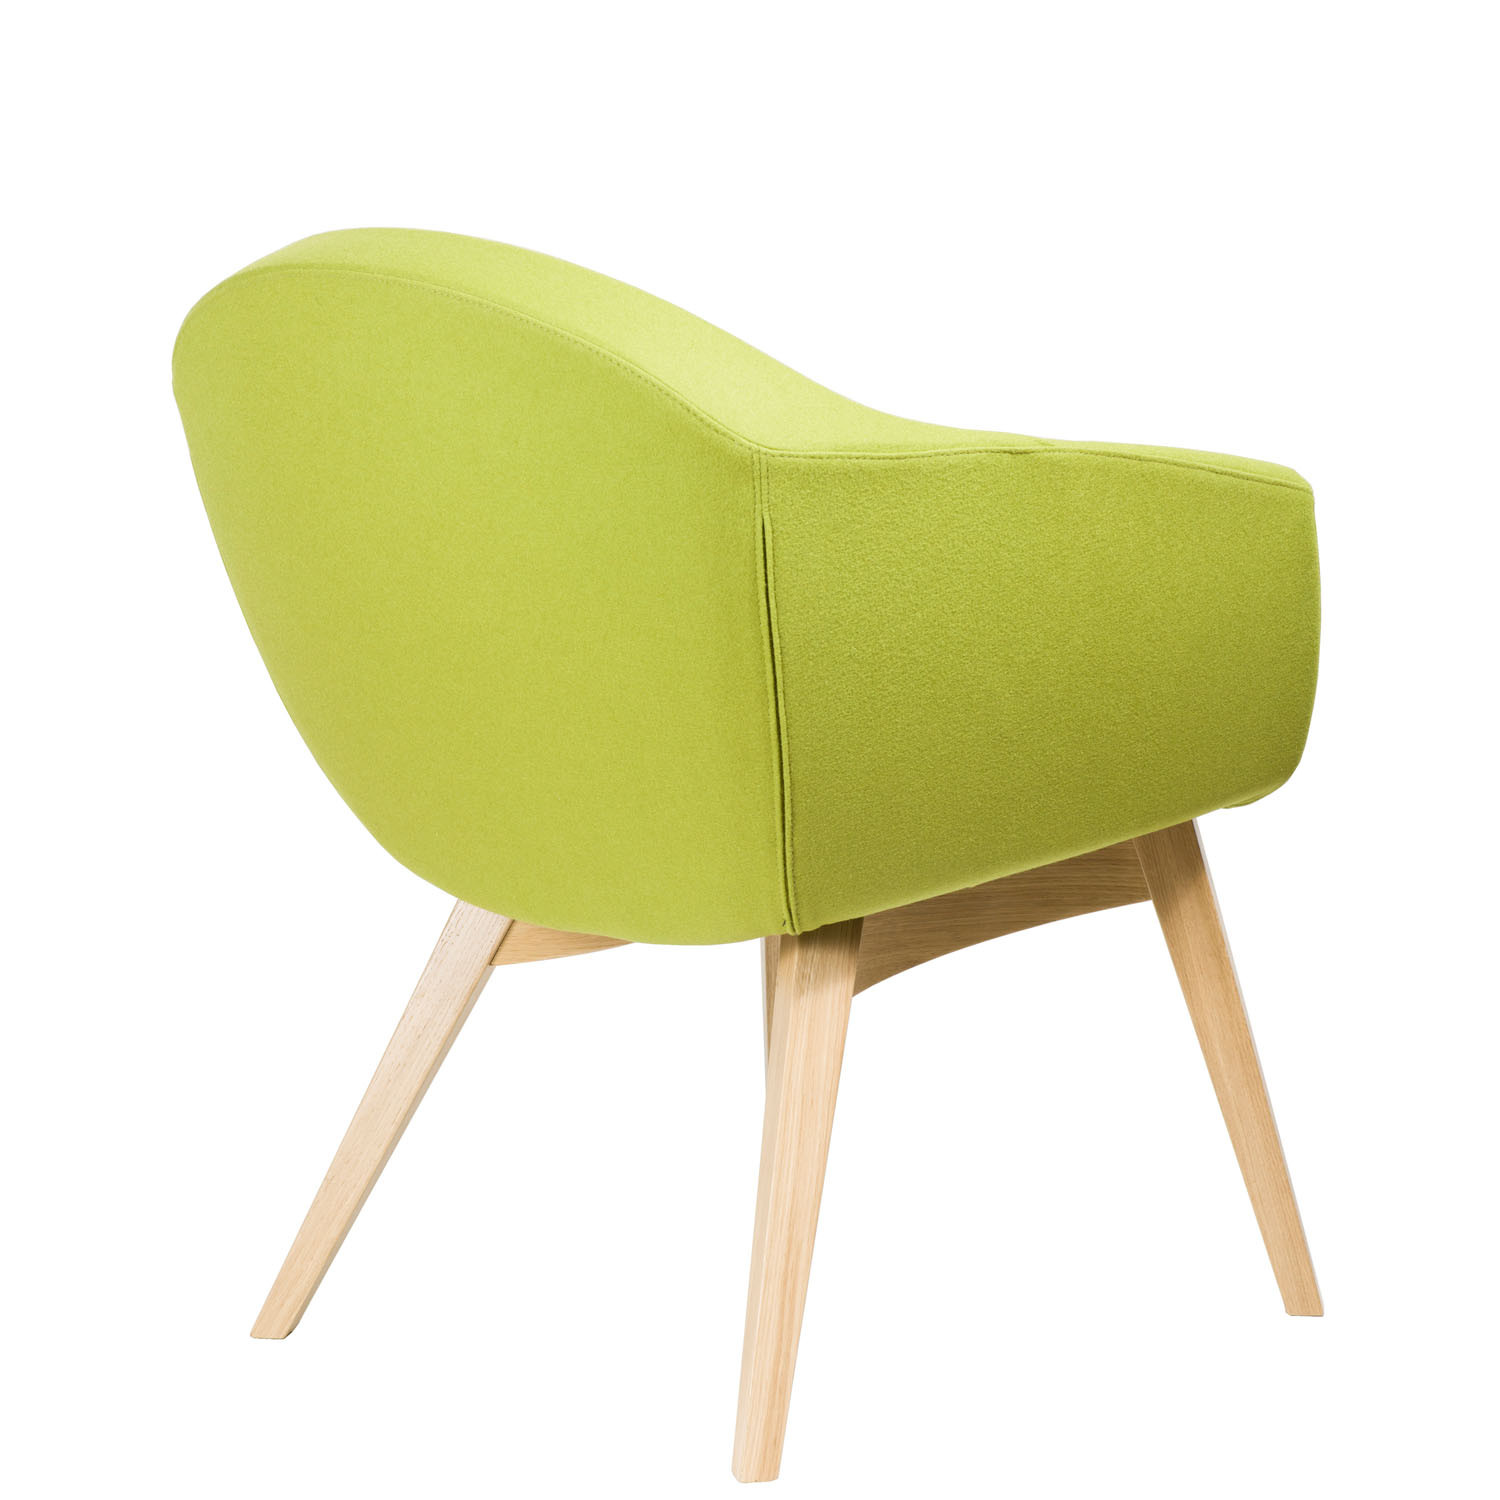 Mortimer Chair with Solid Wooden Legs